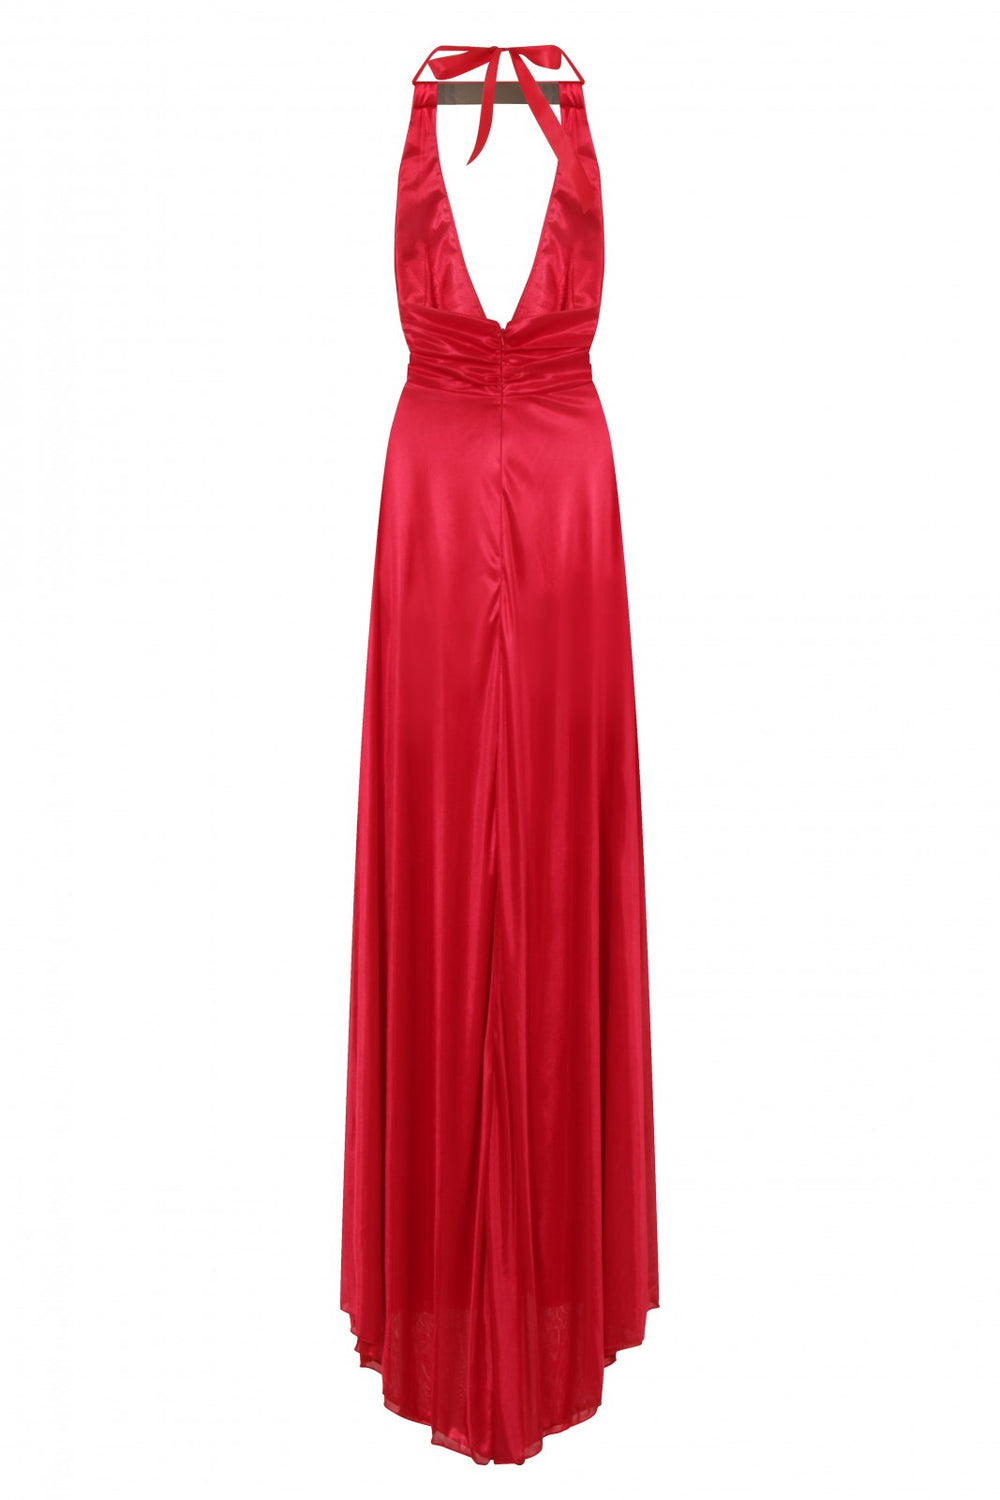 Riri Red Gold Choker Plunge Double Slit Maxi Dress